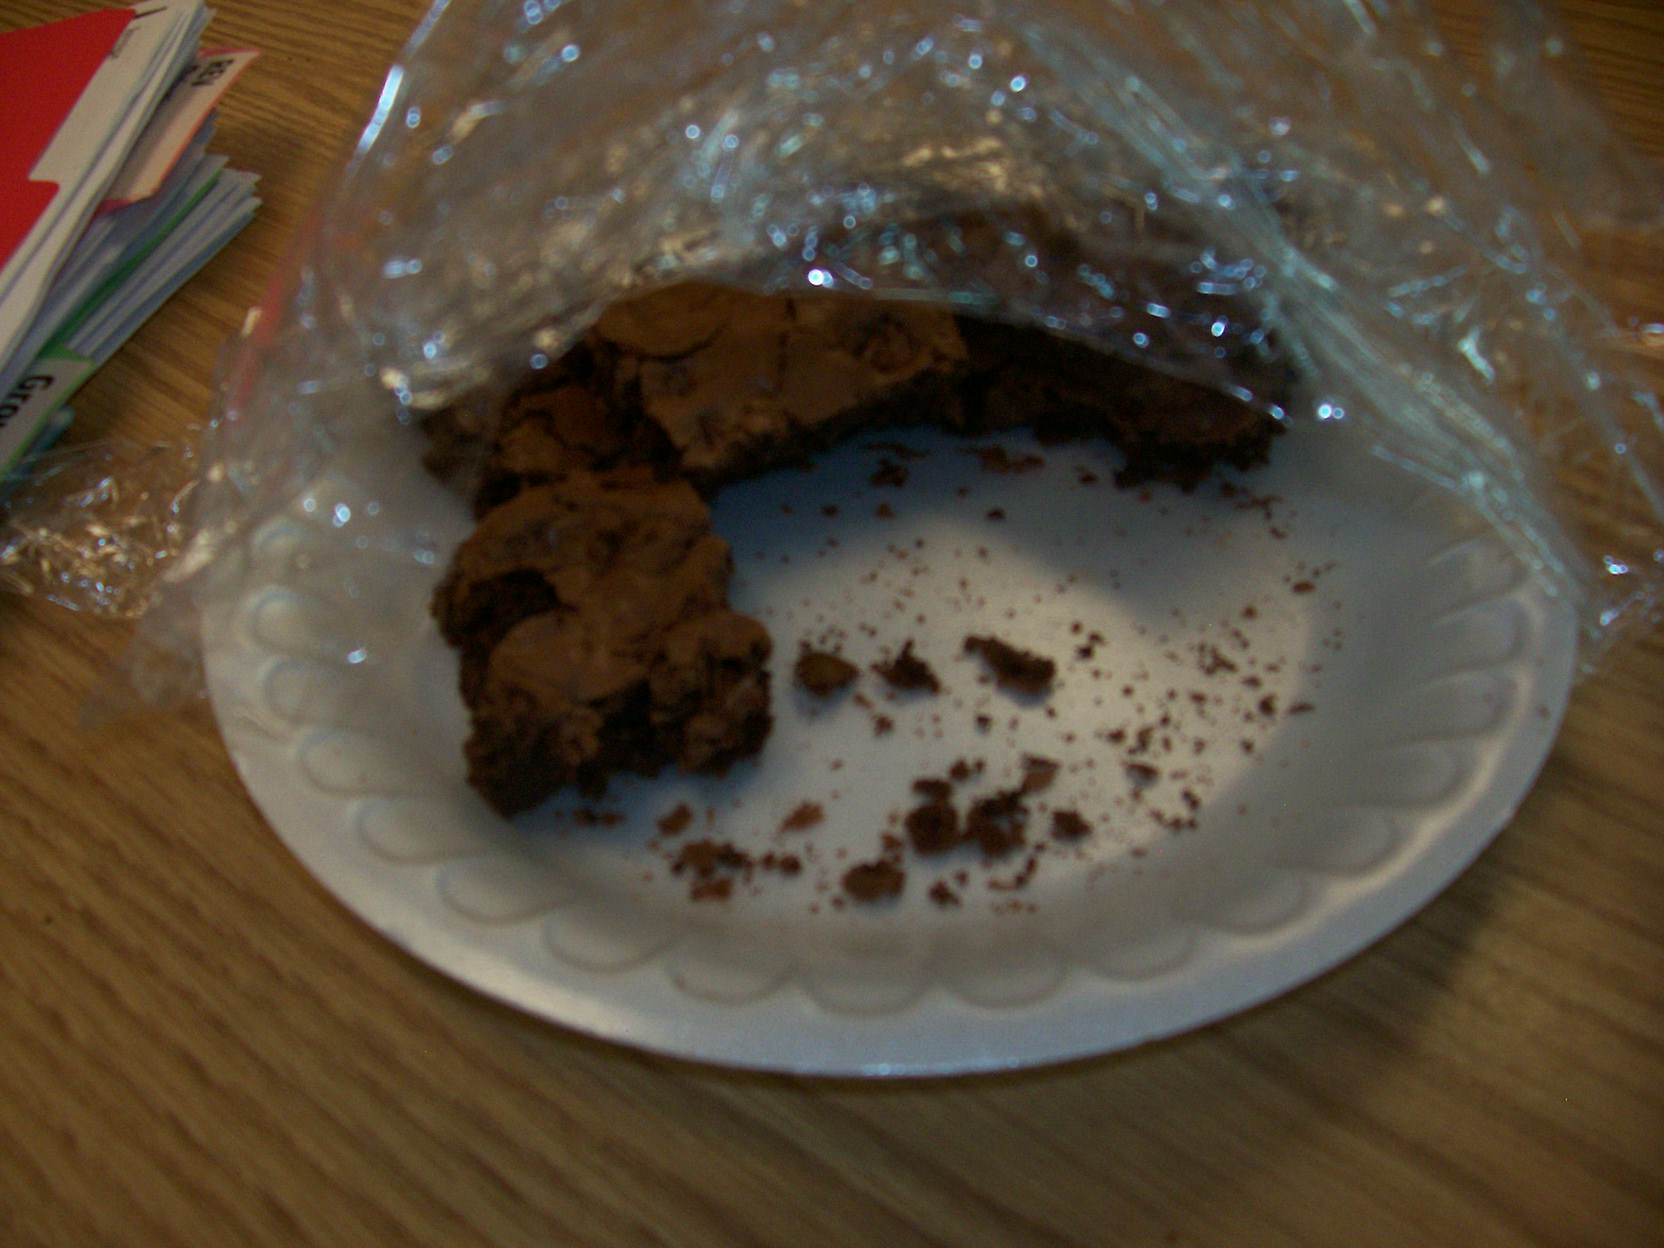 A brownie plate already clobbered before 9 a.m.